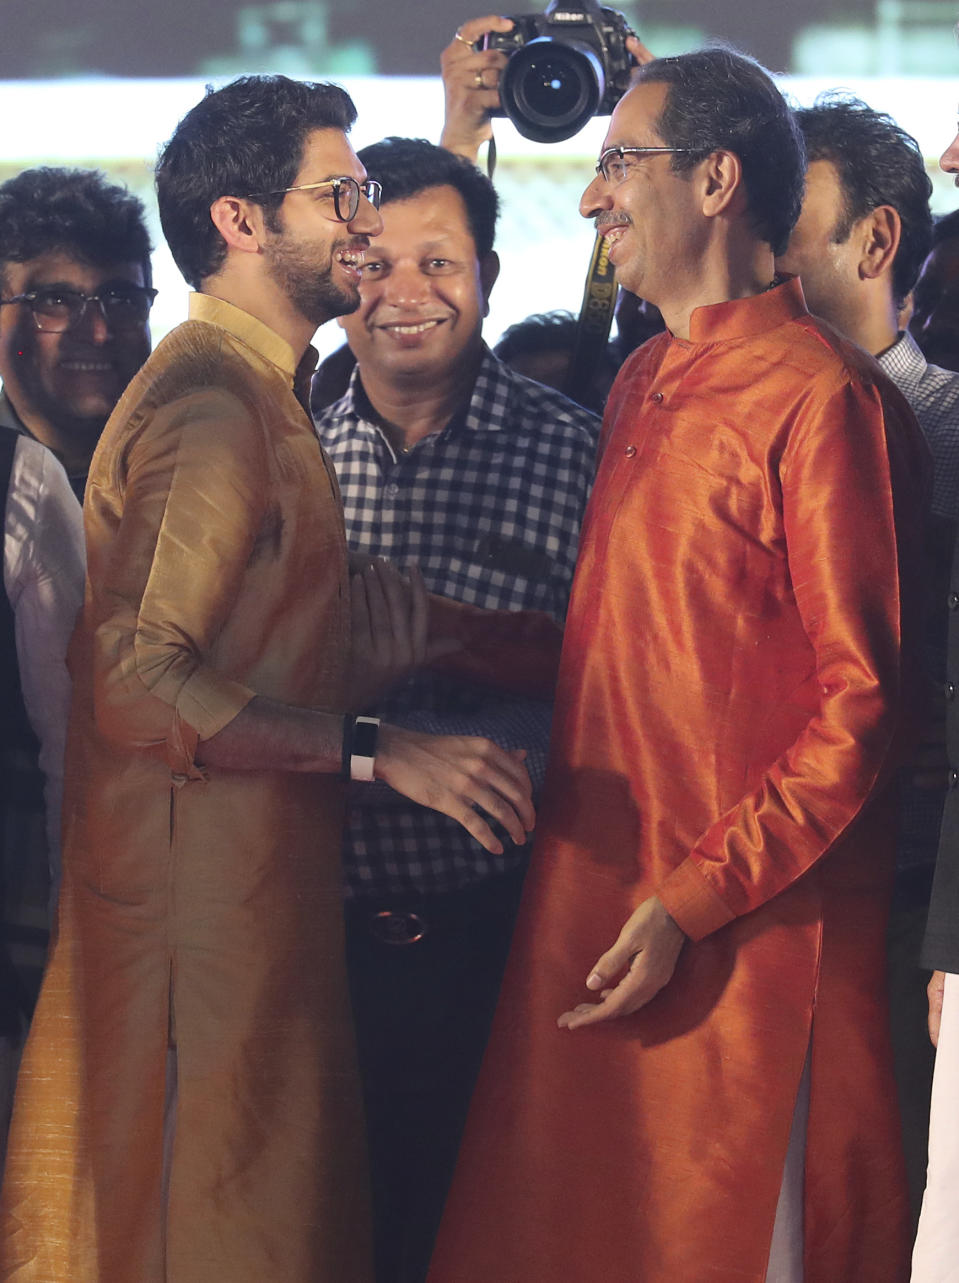 Shiv Sena party leader Uddhav Thackeray, right, is congratulated by his son Aaditya Thackeray after he took oath as chief minister of Maharashtra state during a swearing-in-ceremony in Mumbai, Thursday, Nov. 28, 2019. Supporters of the Shiv Sena, Nationalist Congress Party (NCP) and the Congress party thronged Shivaji Park to watch their leaders take oath of office. (AP Photo/Rafiq Maqbool)